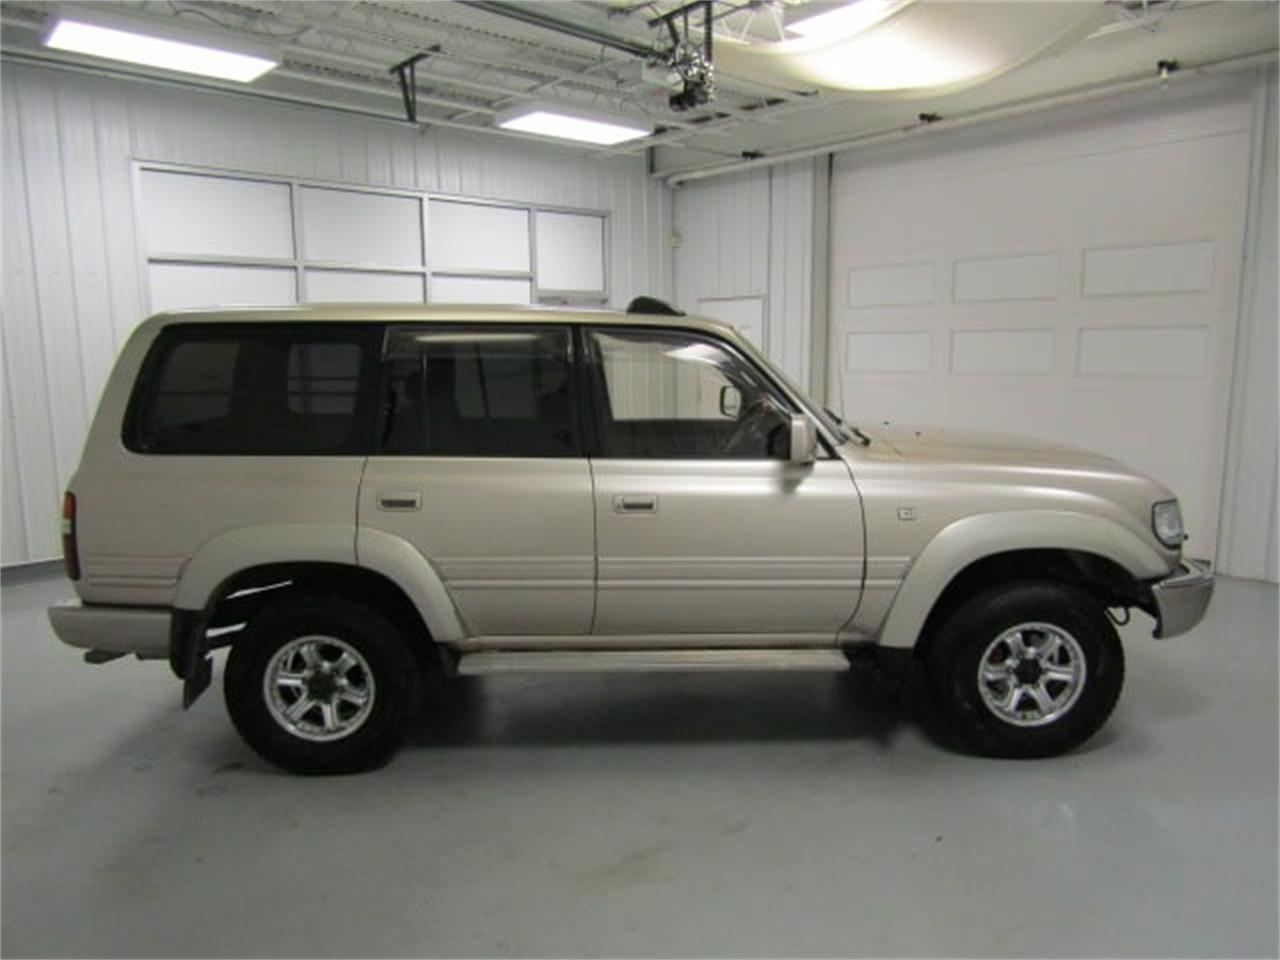 Large Picture of 1991 Toyota Land Cruiser FJ Offered by Duncan Imports & Classic Cars - LI66